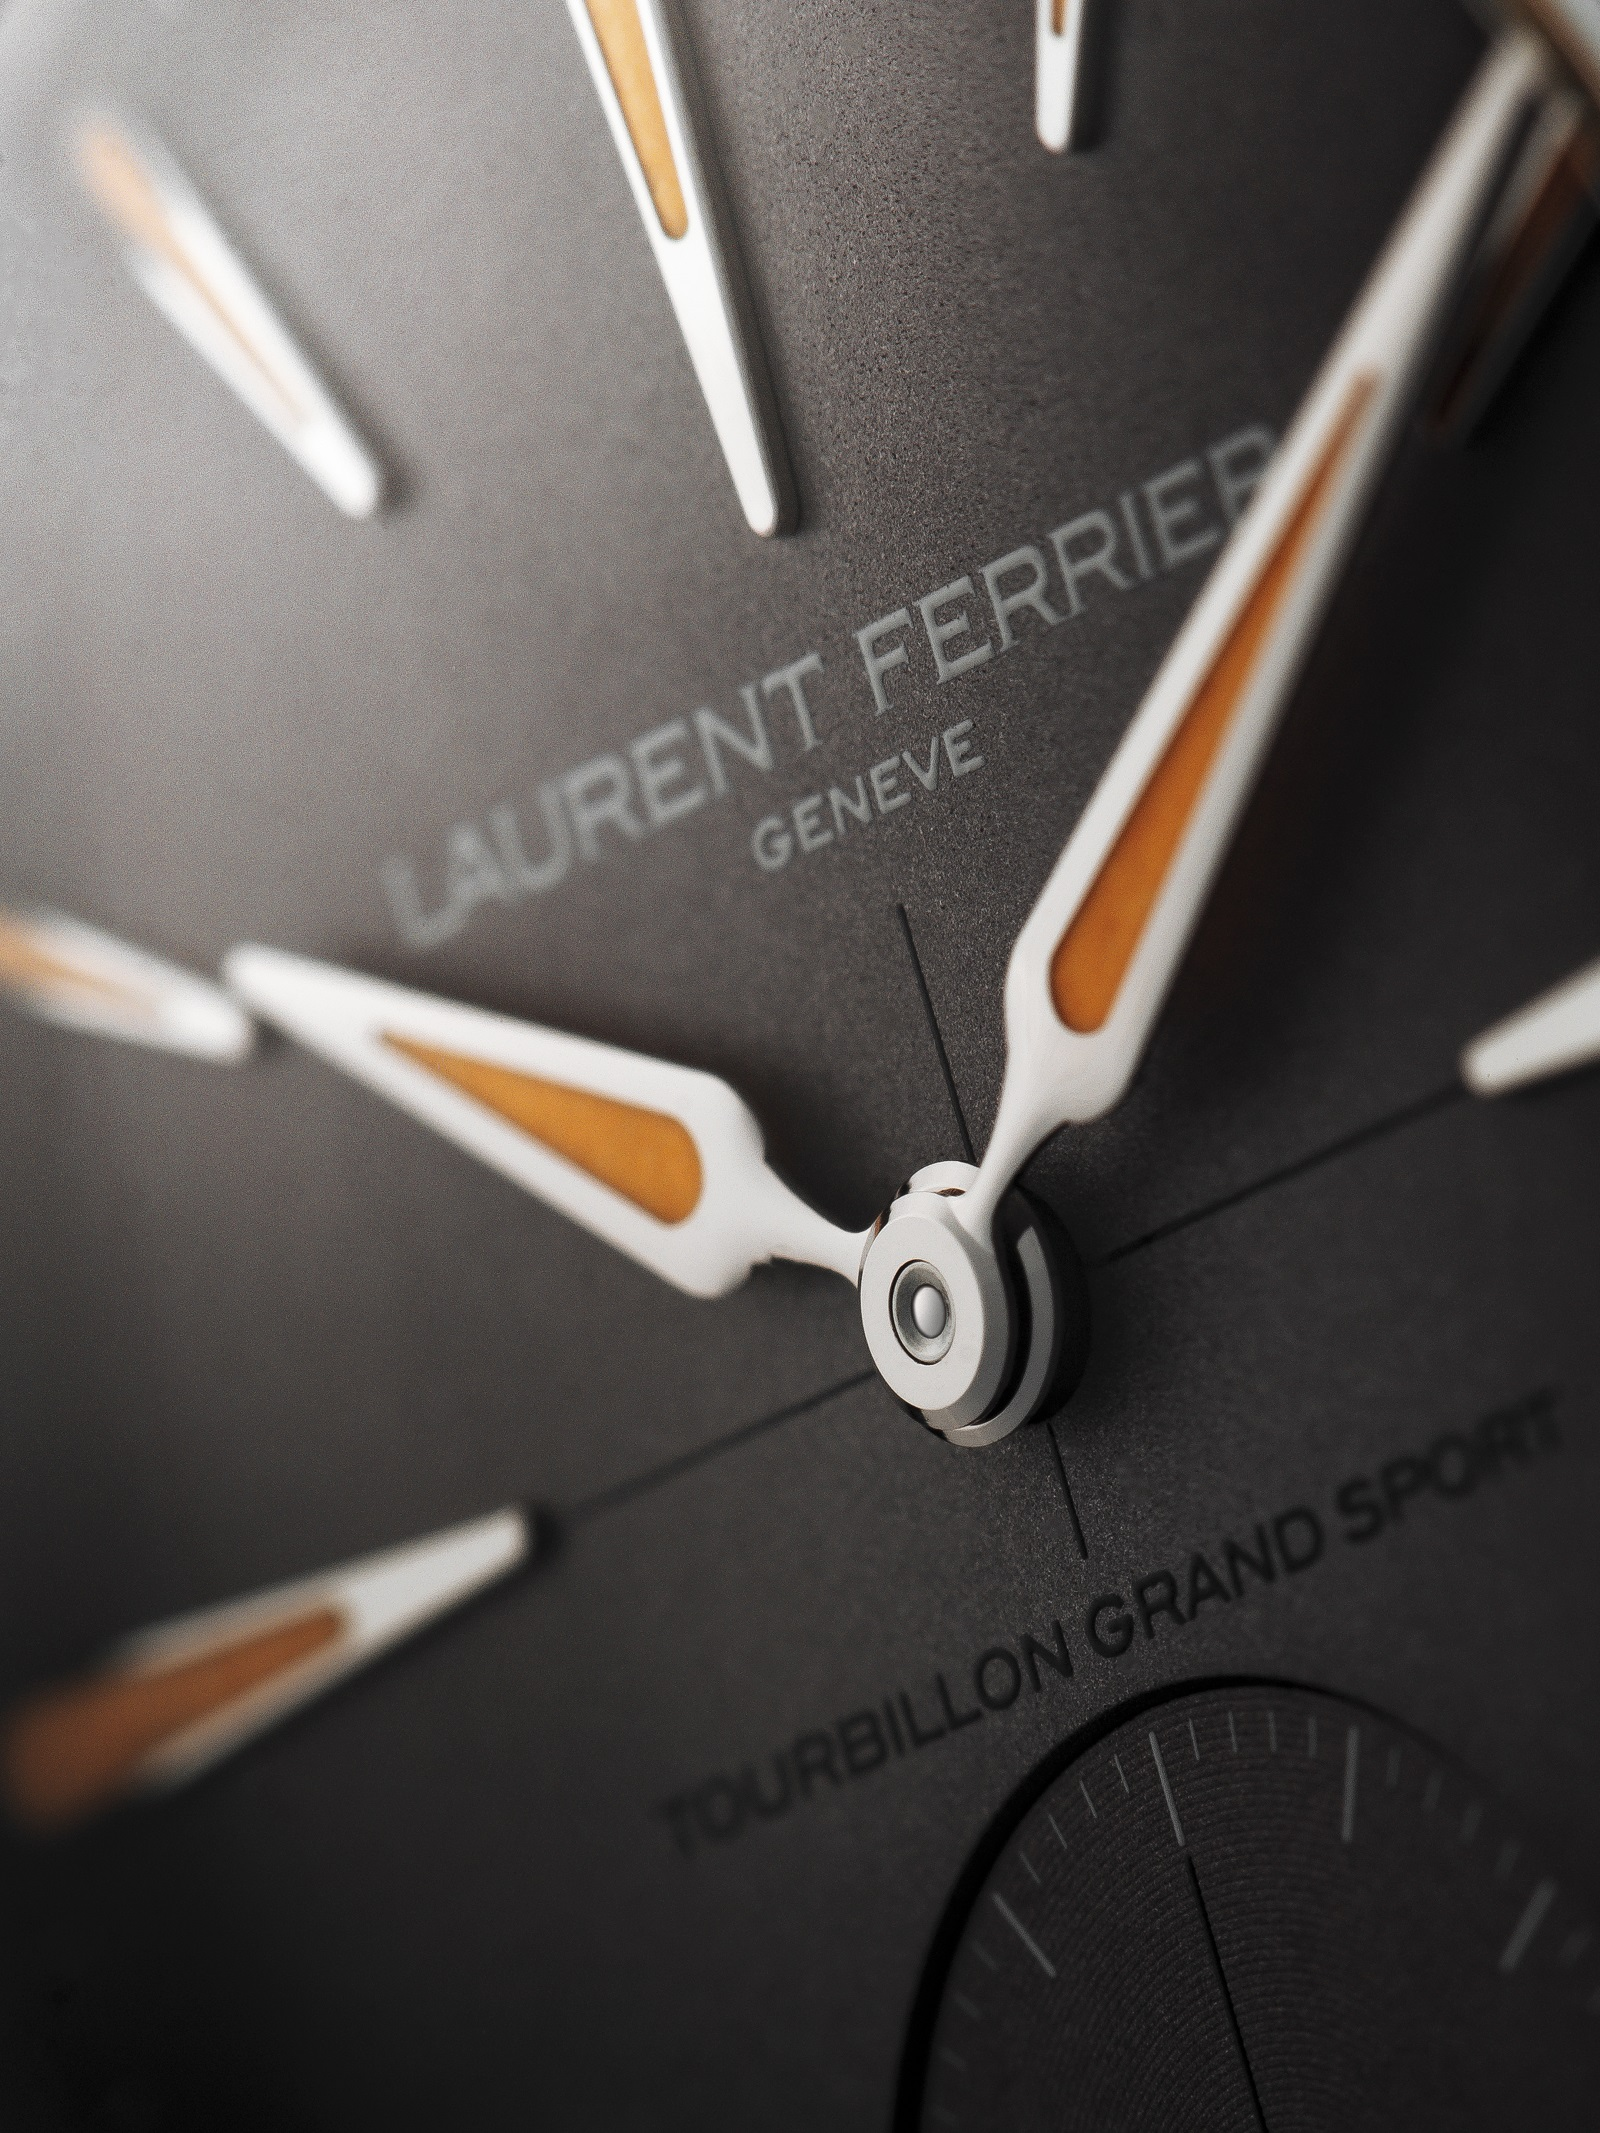 Laurent Ferrier Tourbillon Grand Sport dial close up